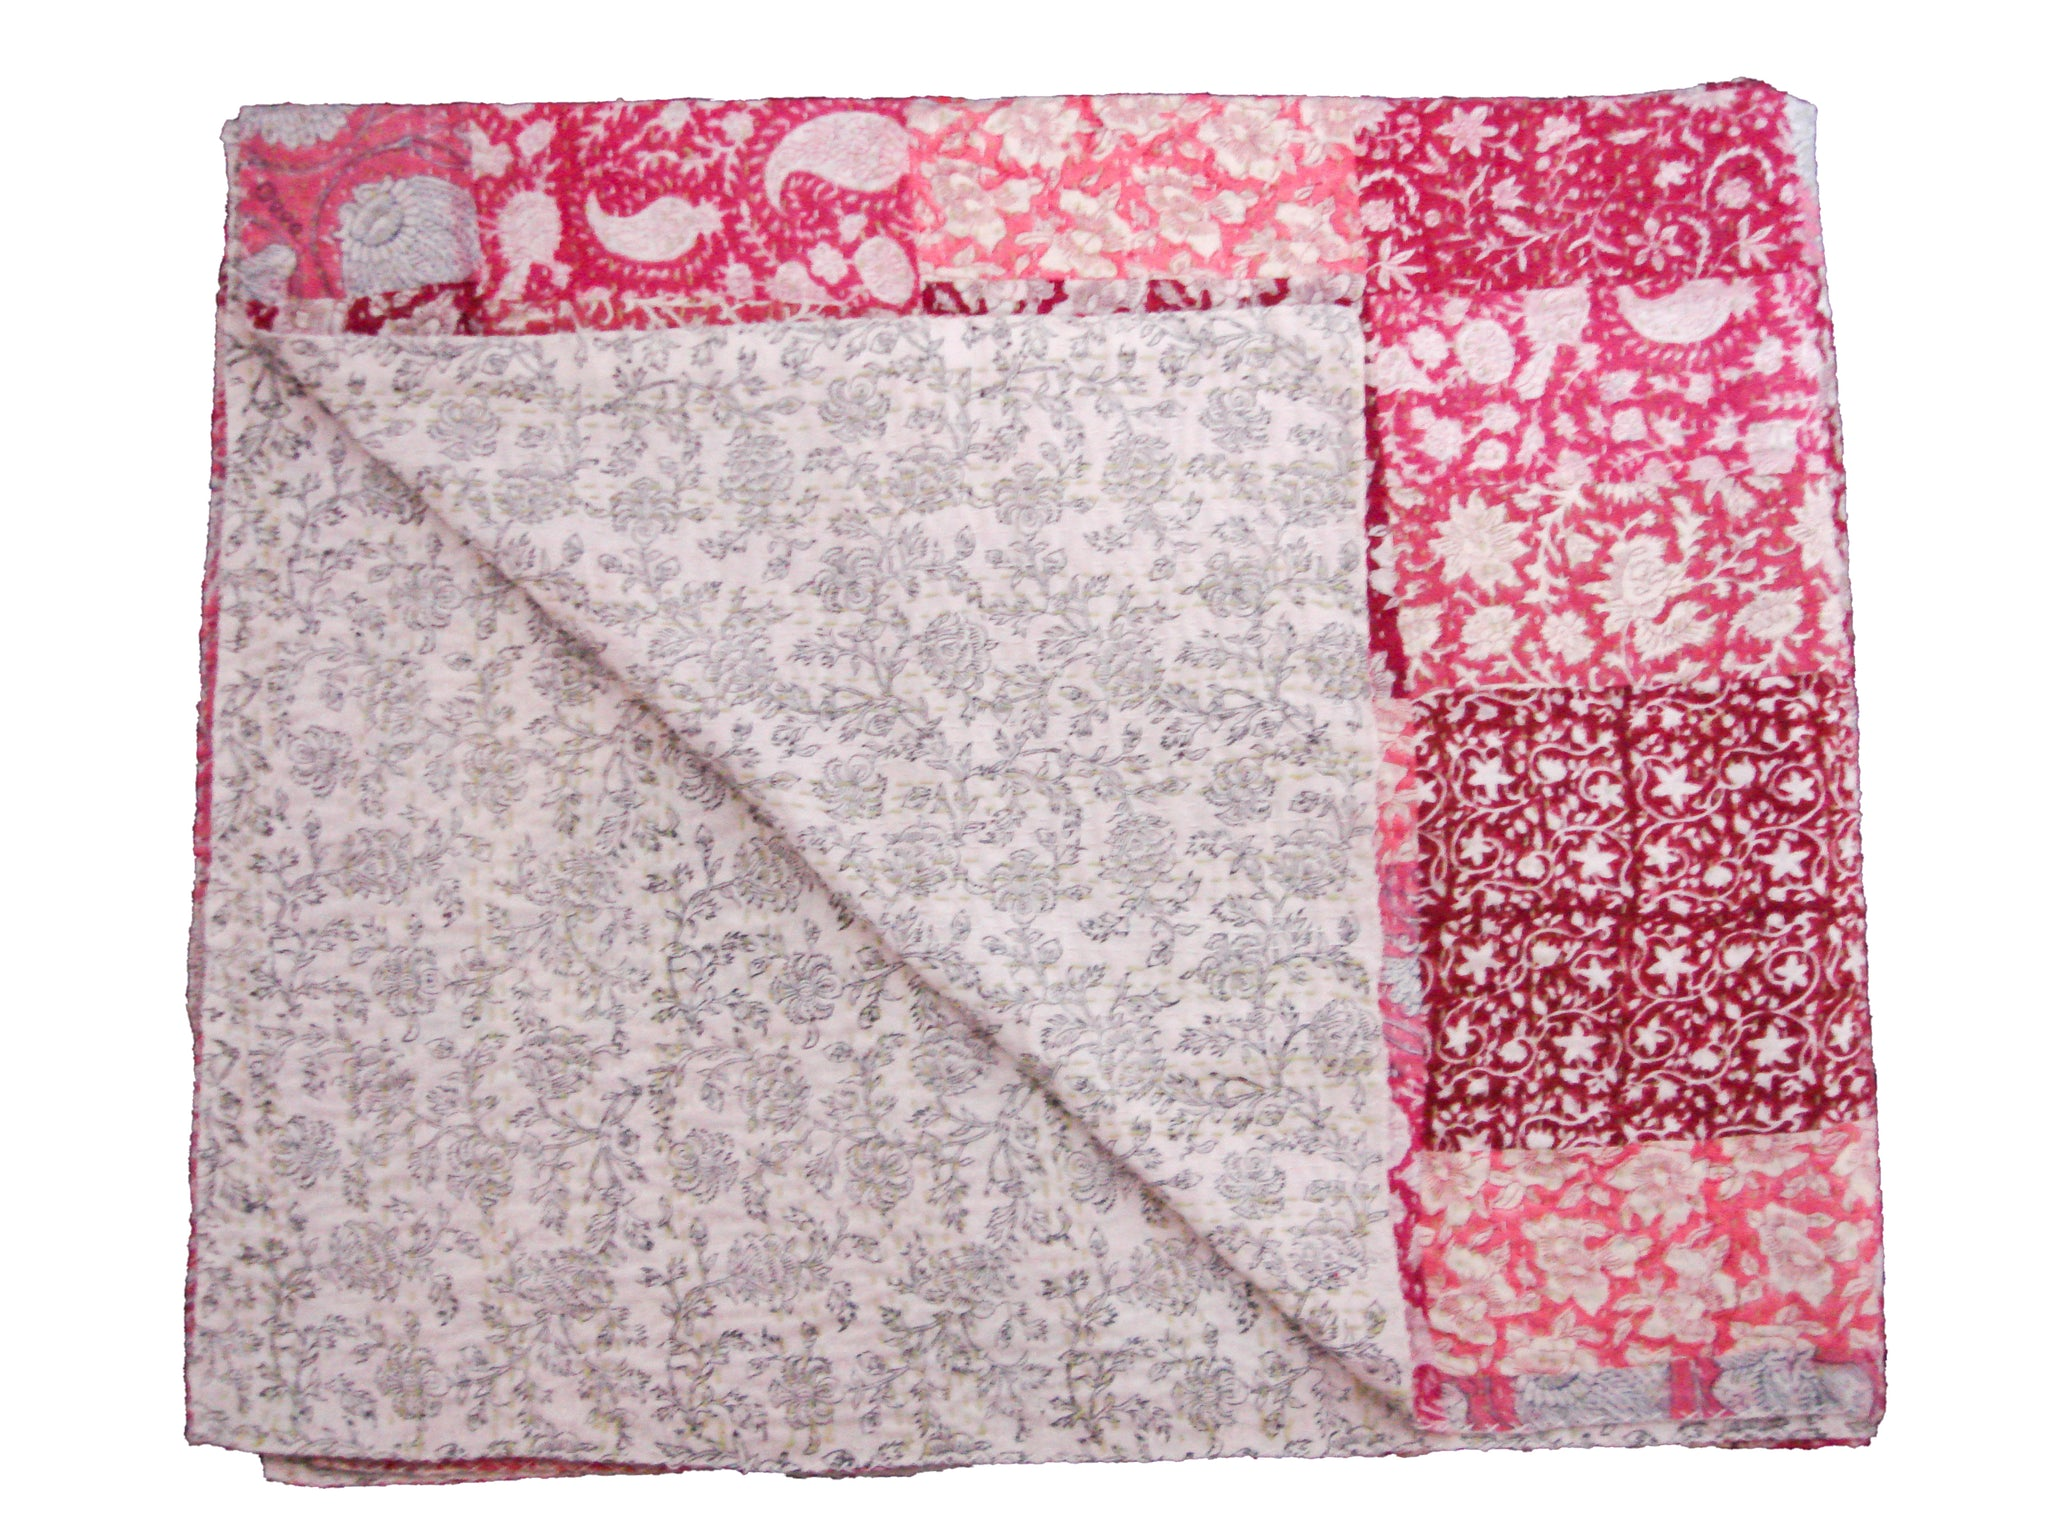 Handmade Patchwork Throw - Pink Multi Colored Patchwork